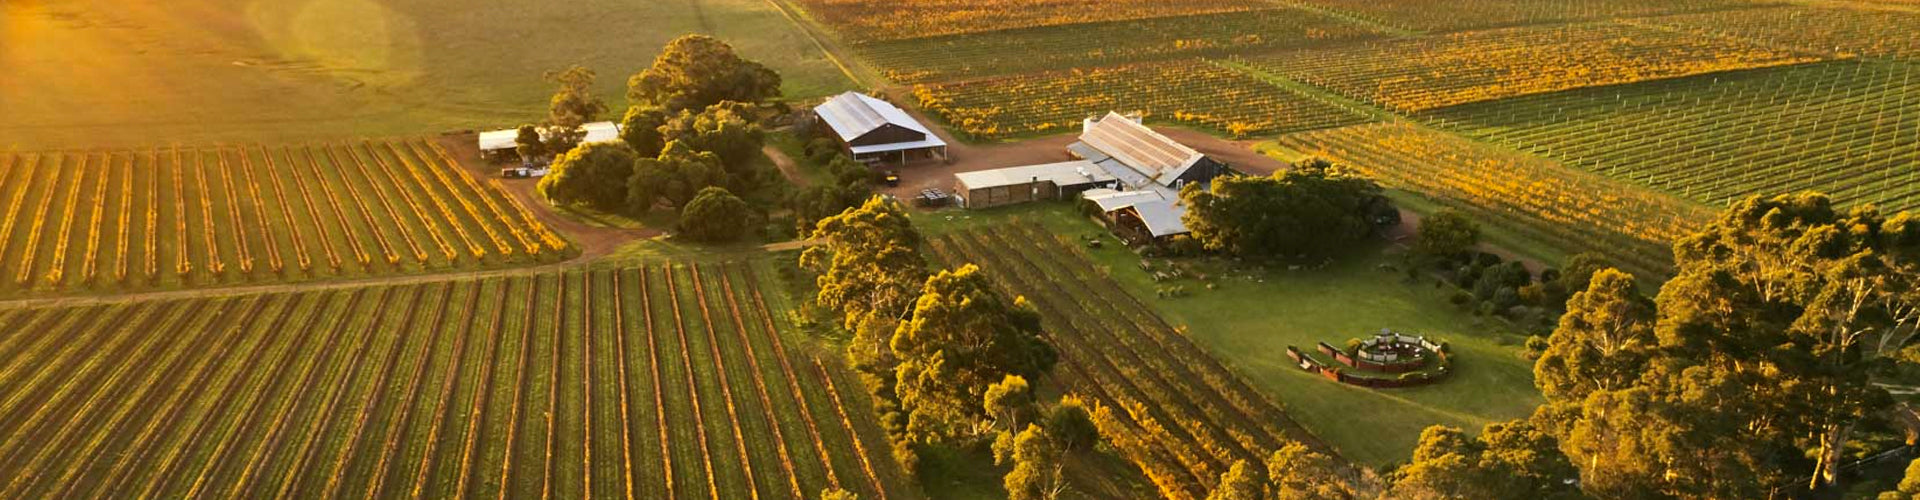 Arial photo of Cullen Wines Winery & Vineyards